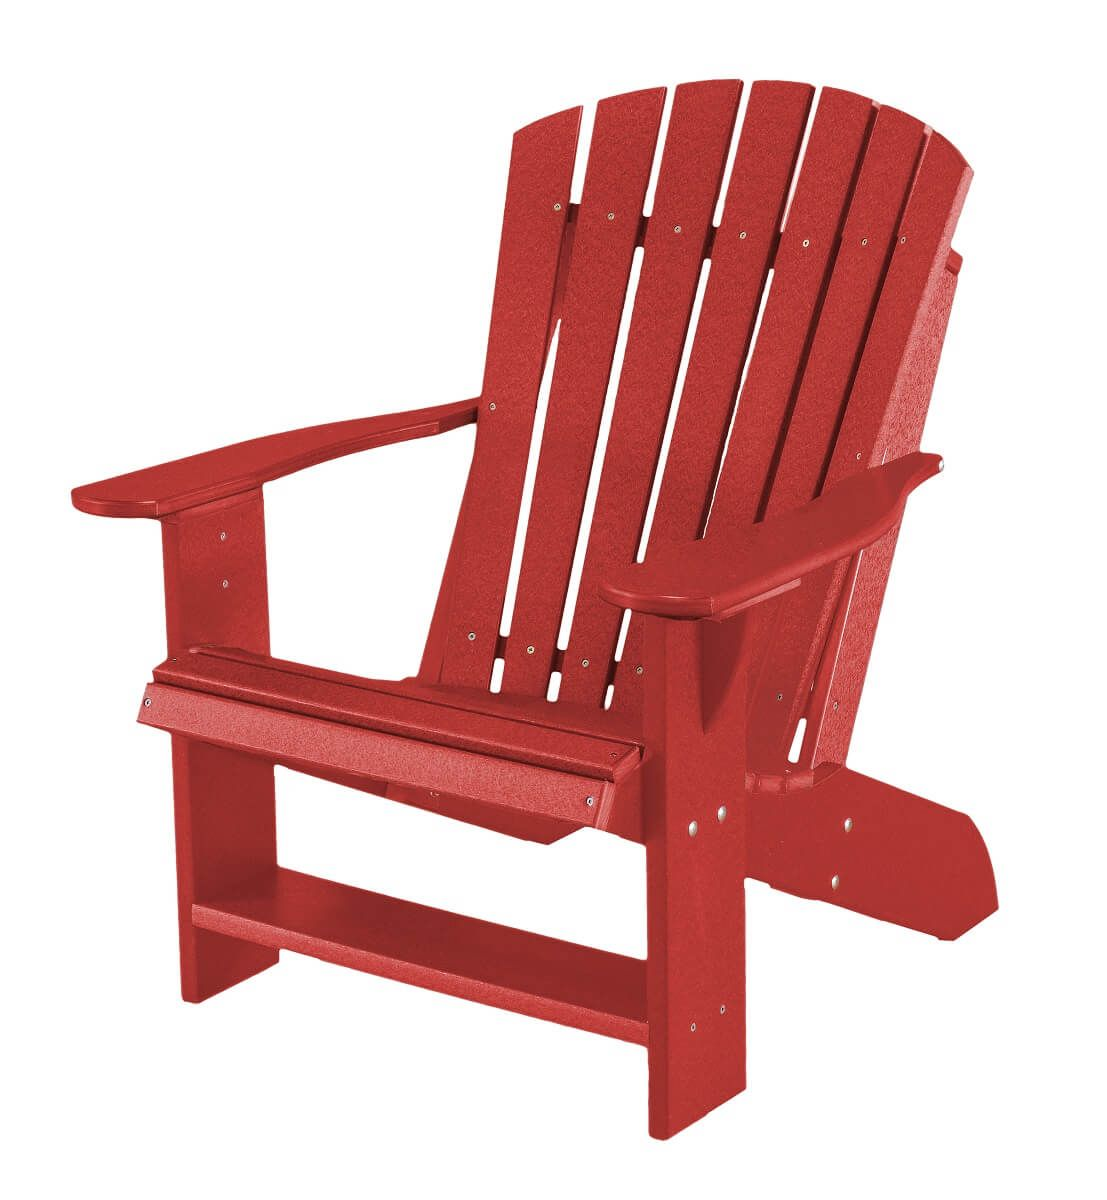 Cardinal Red Sidra Adirondack Chair